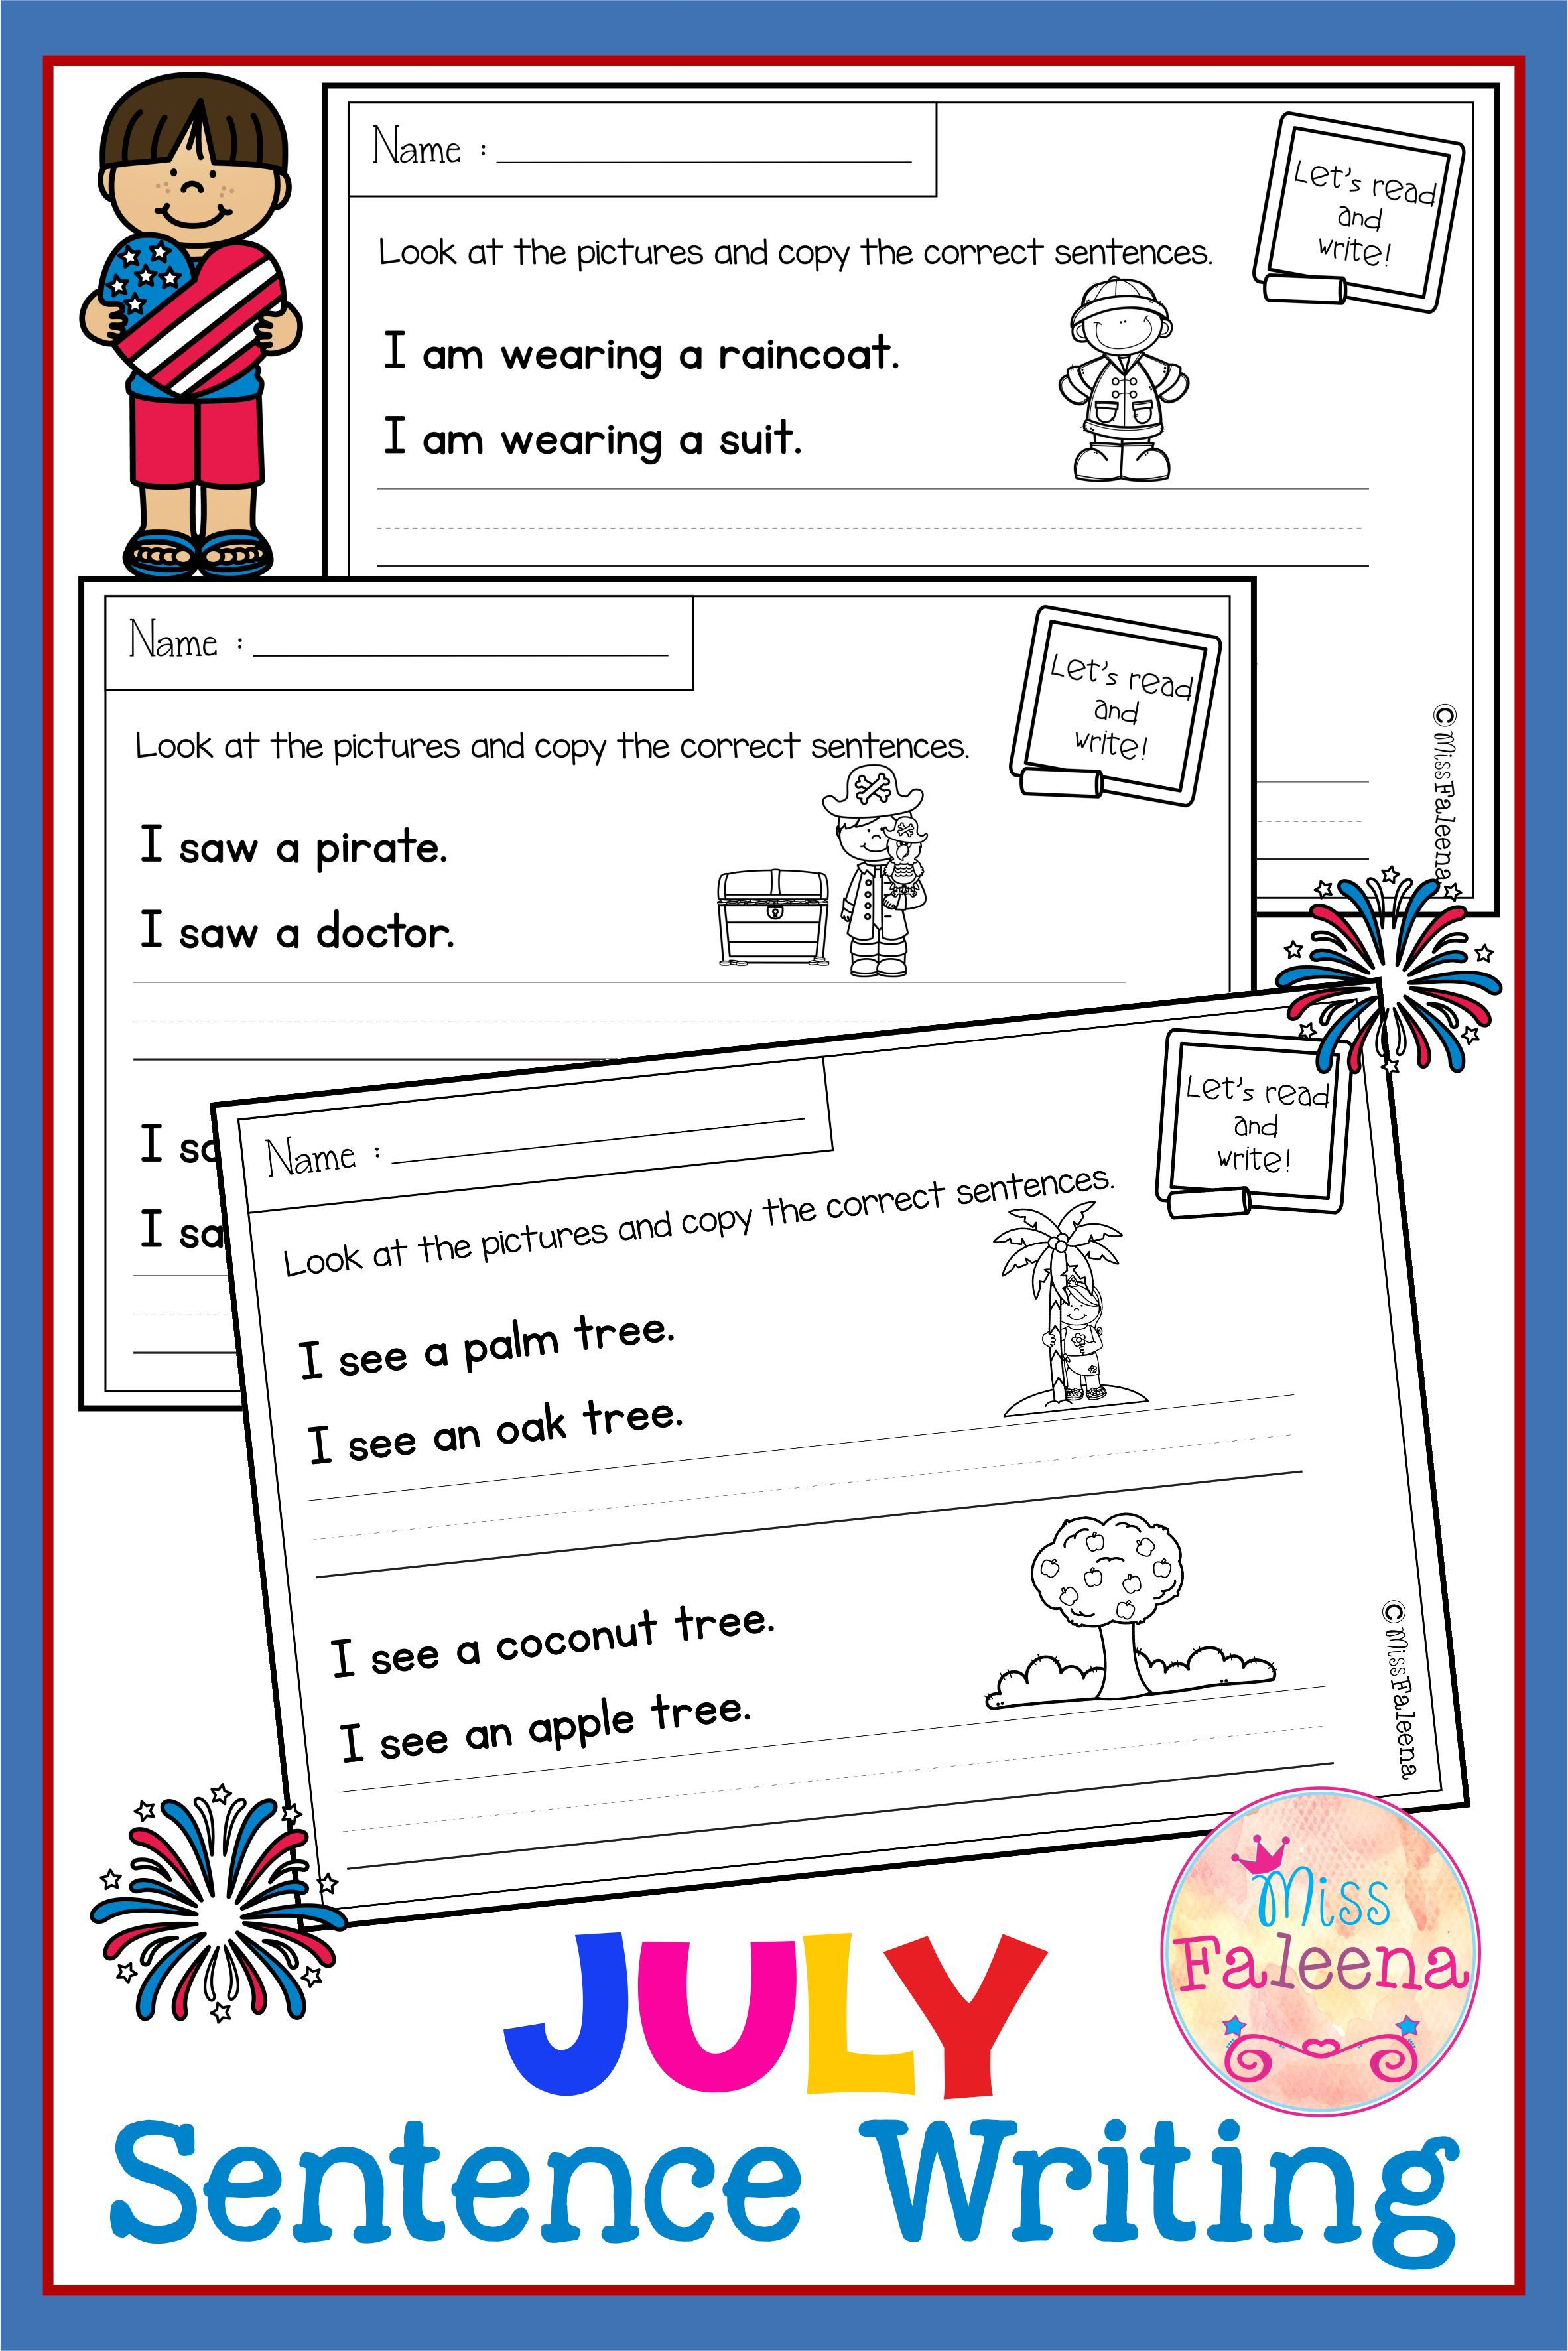 July Sentence Writing In